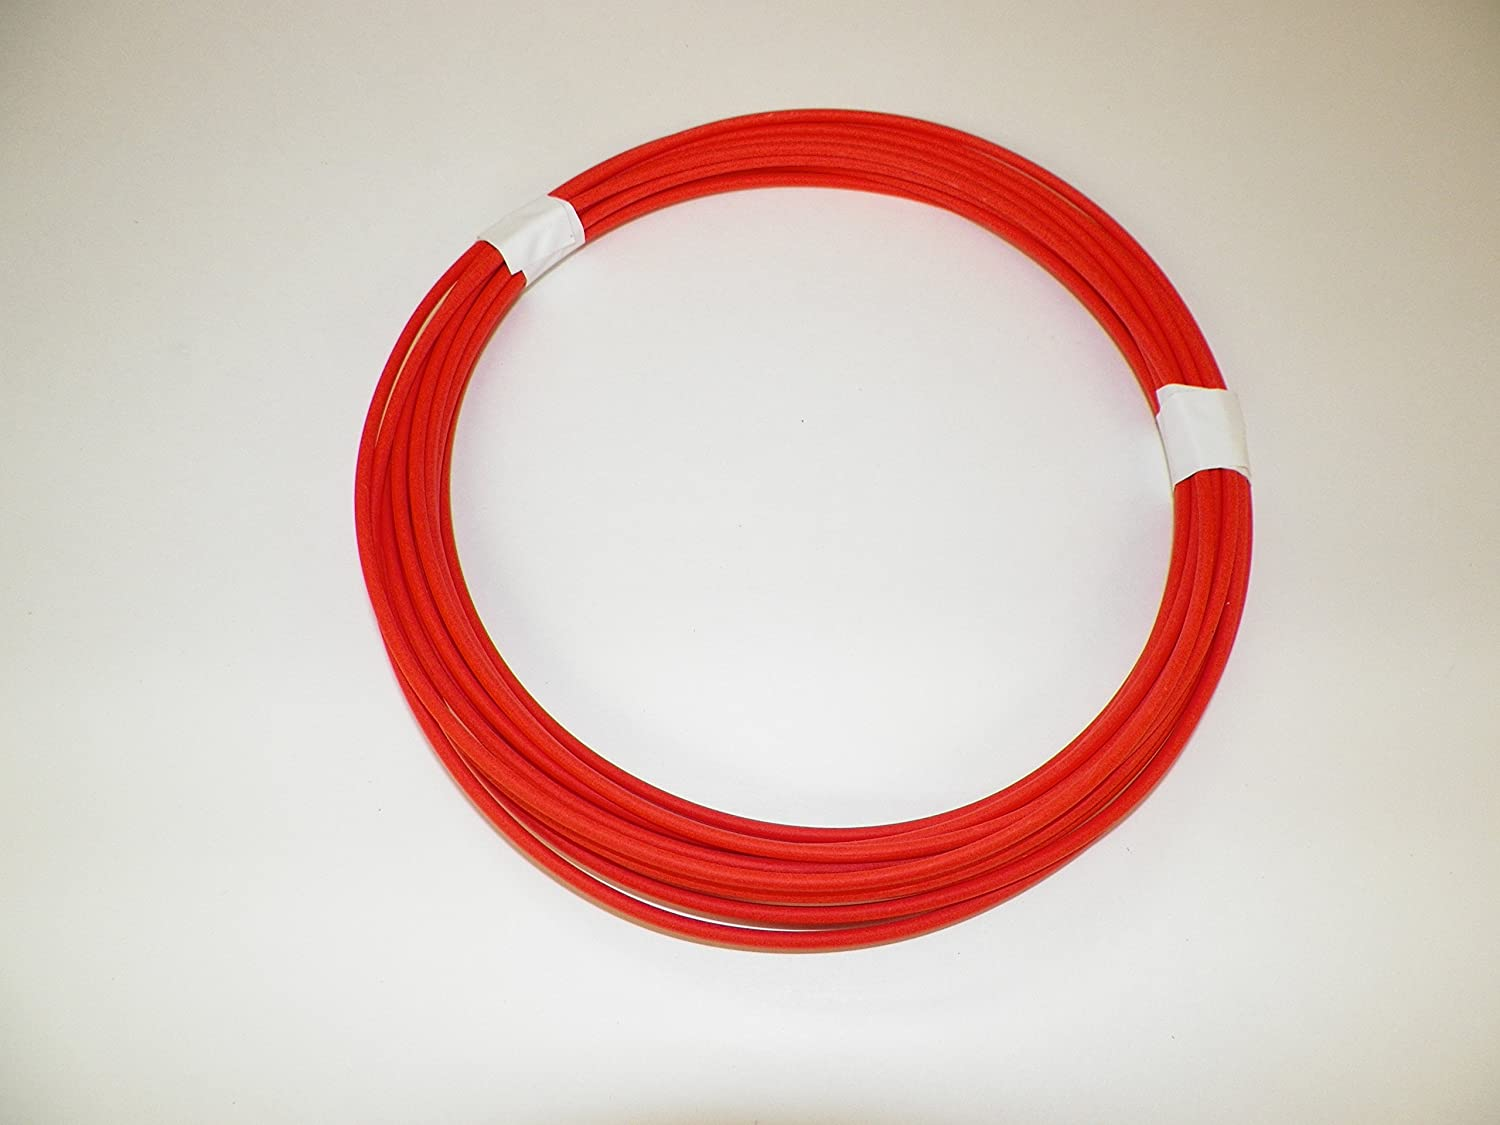 10 Ga 10 feet Red Abrasion-Resistant General Purpose Wire GXL -